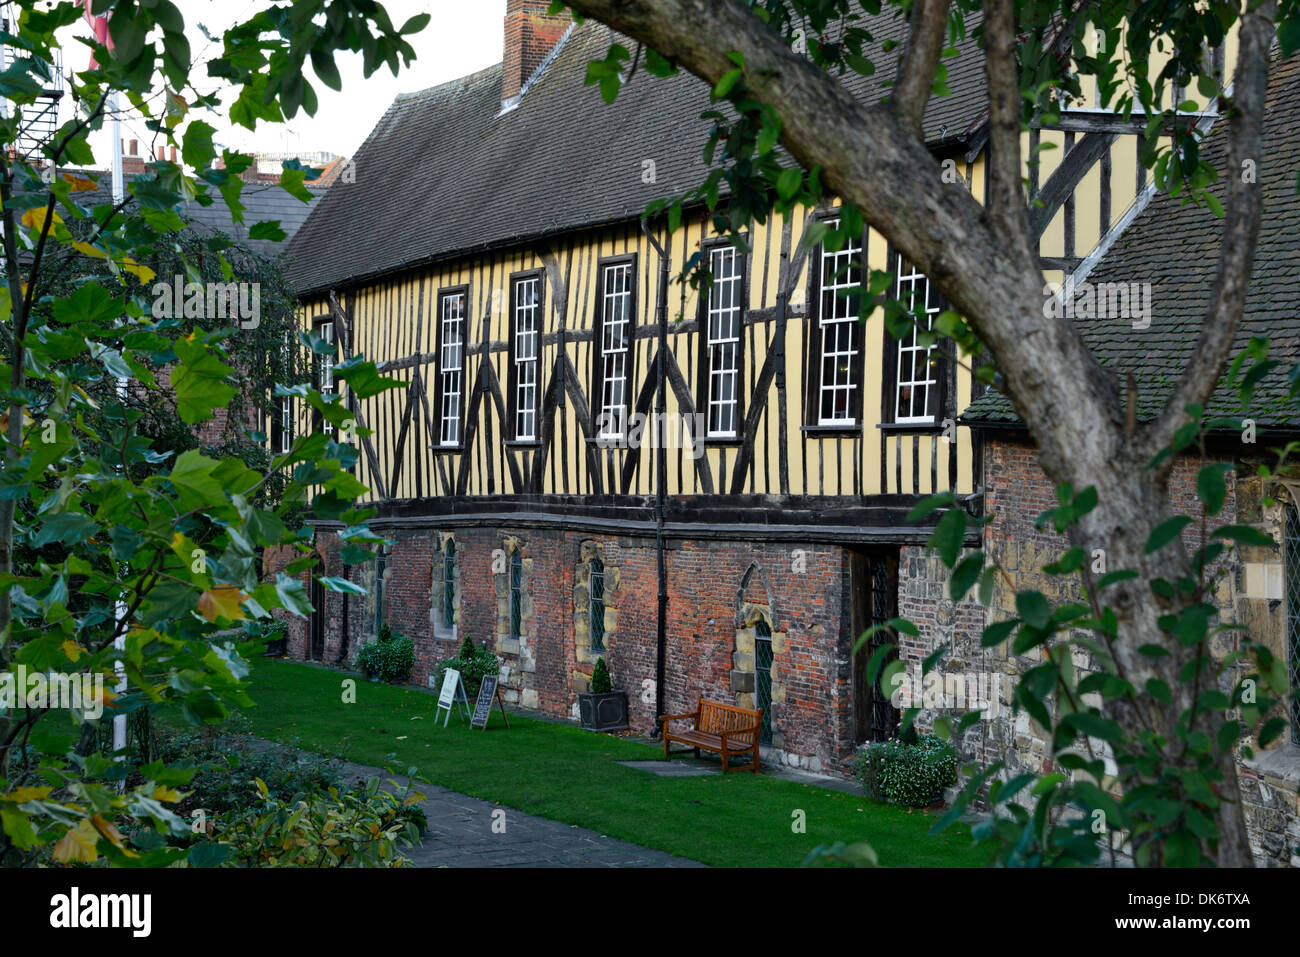 The Merchant Adventurers' Hall, Medieval Guildhall, York, Yorkshire, England, United Kingdom, UK, Europe - Stock Image